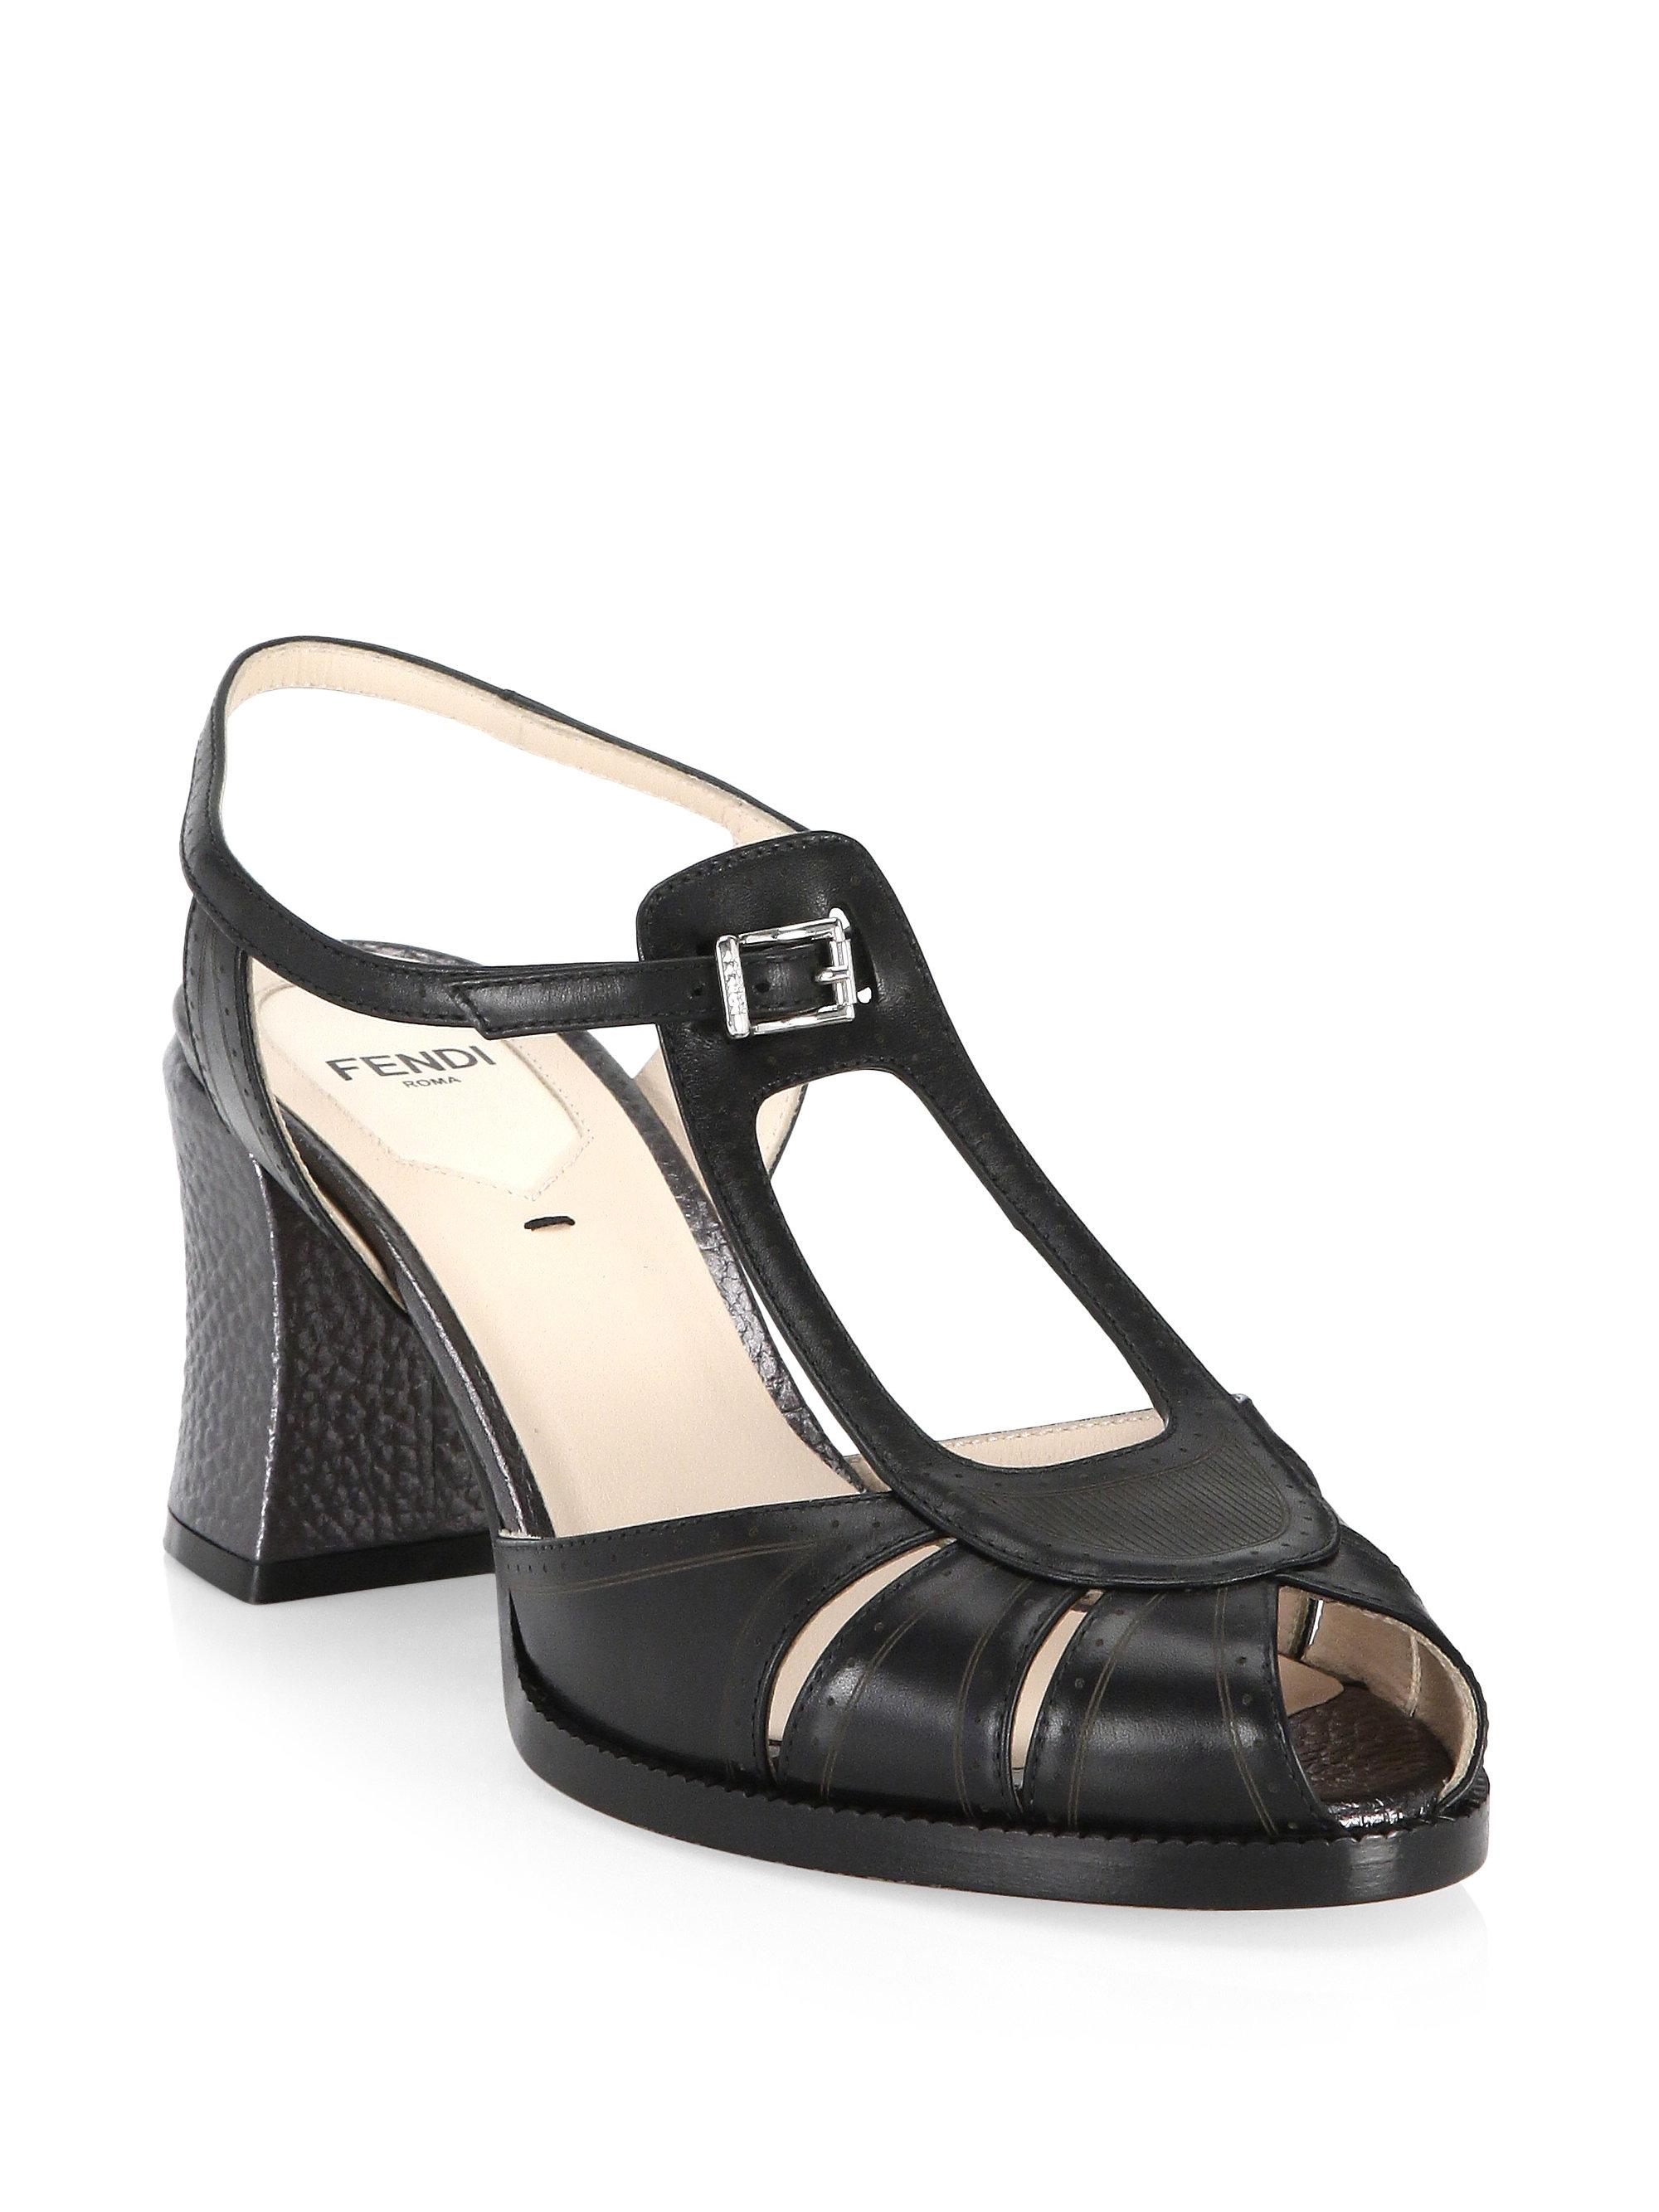 67b7ee99ae63 Lyst - Fendi Block Heel Leather Sandals in Black